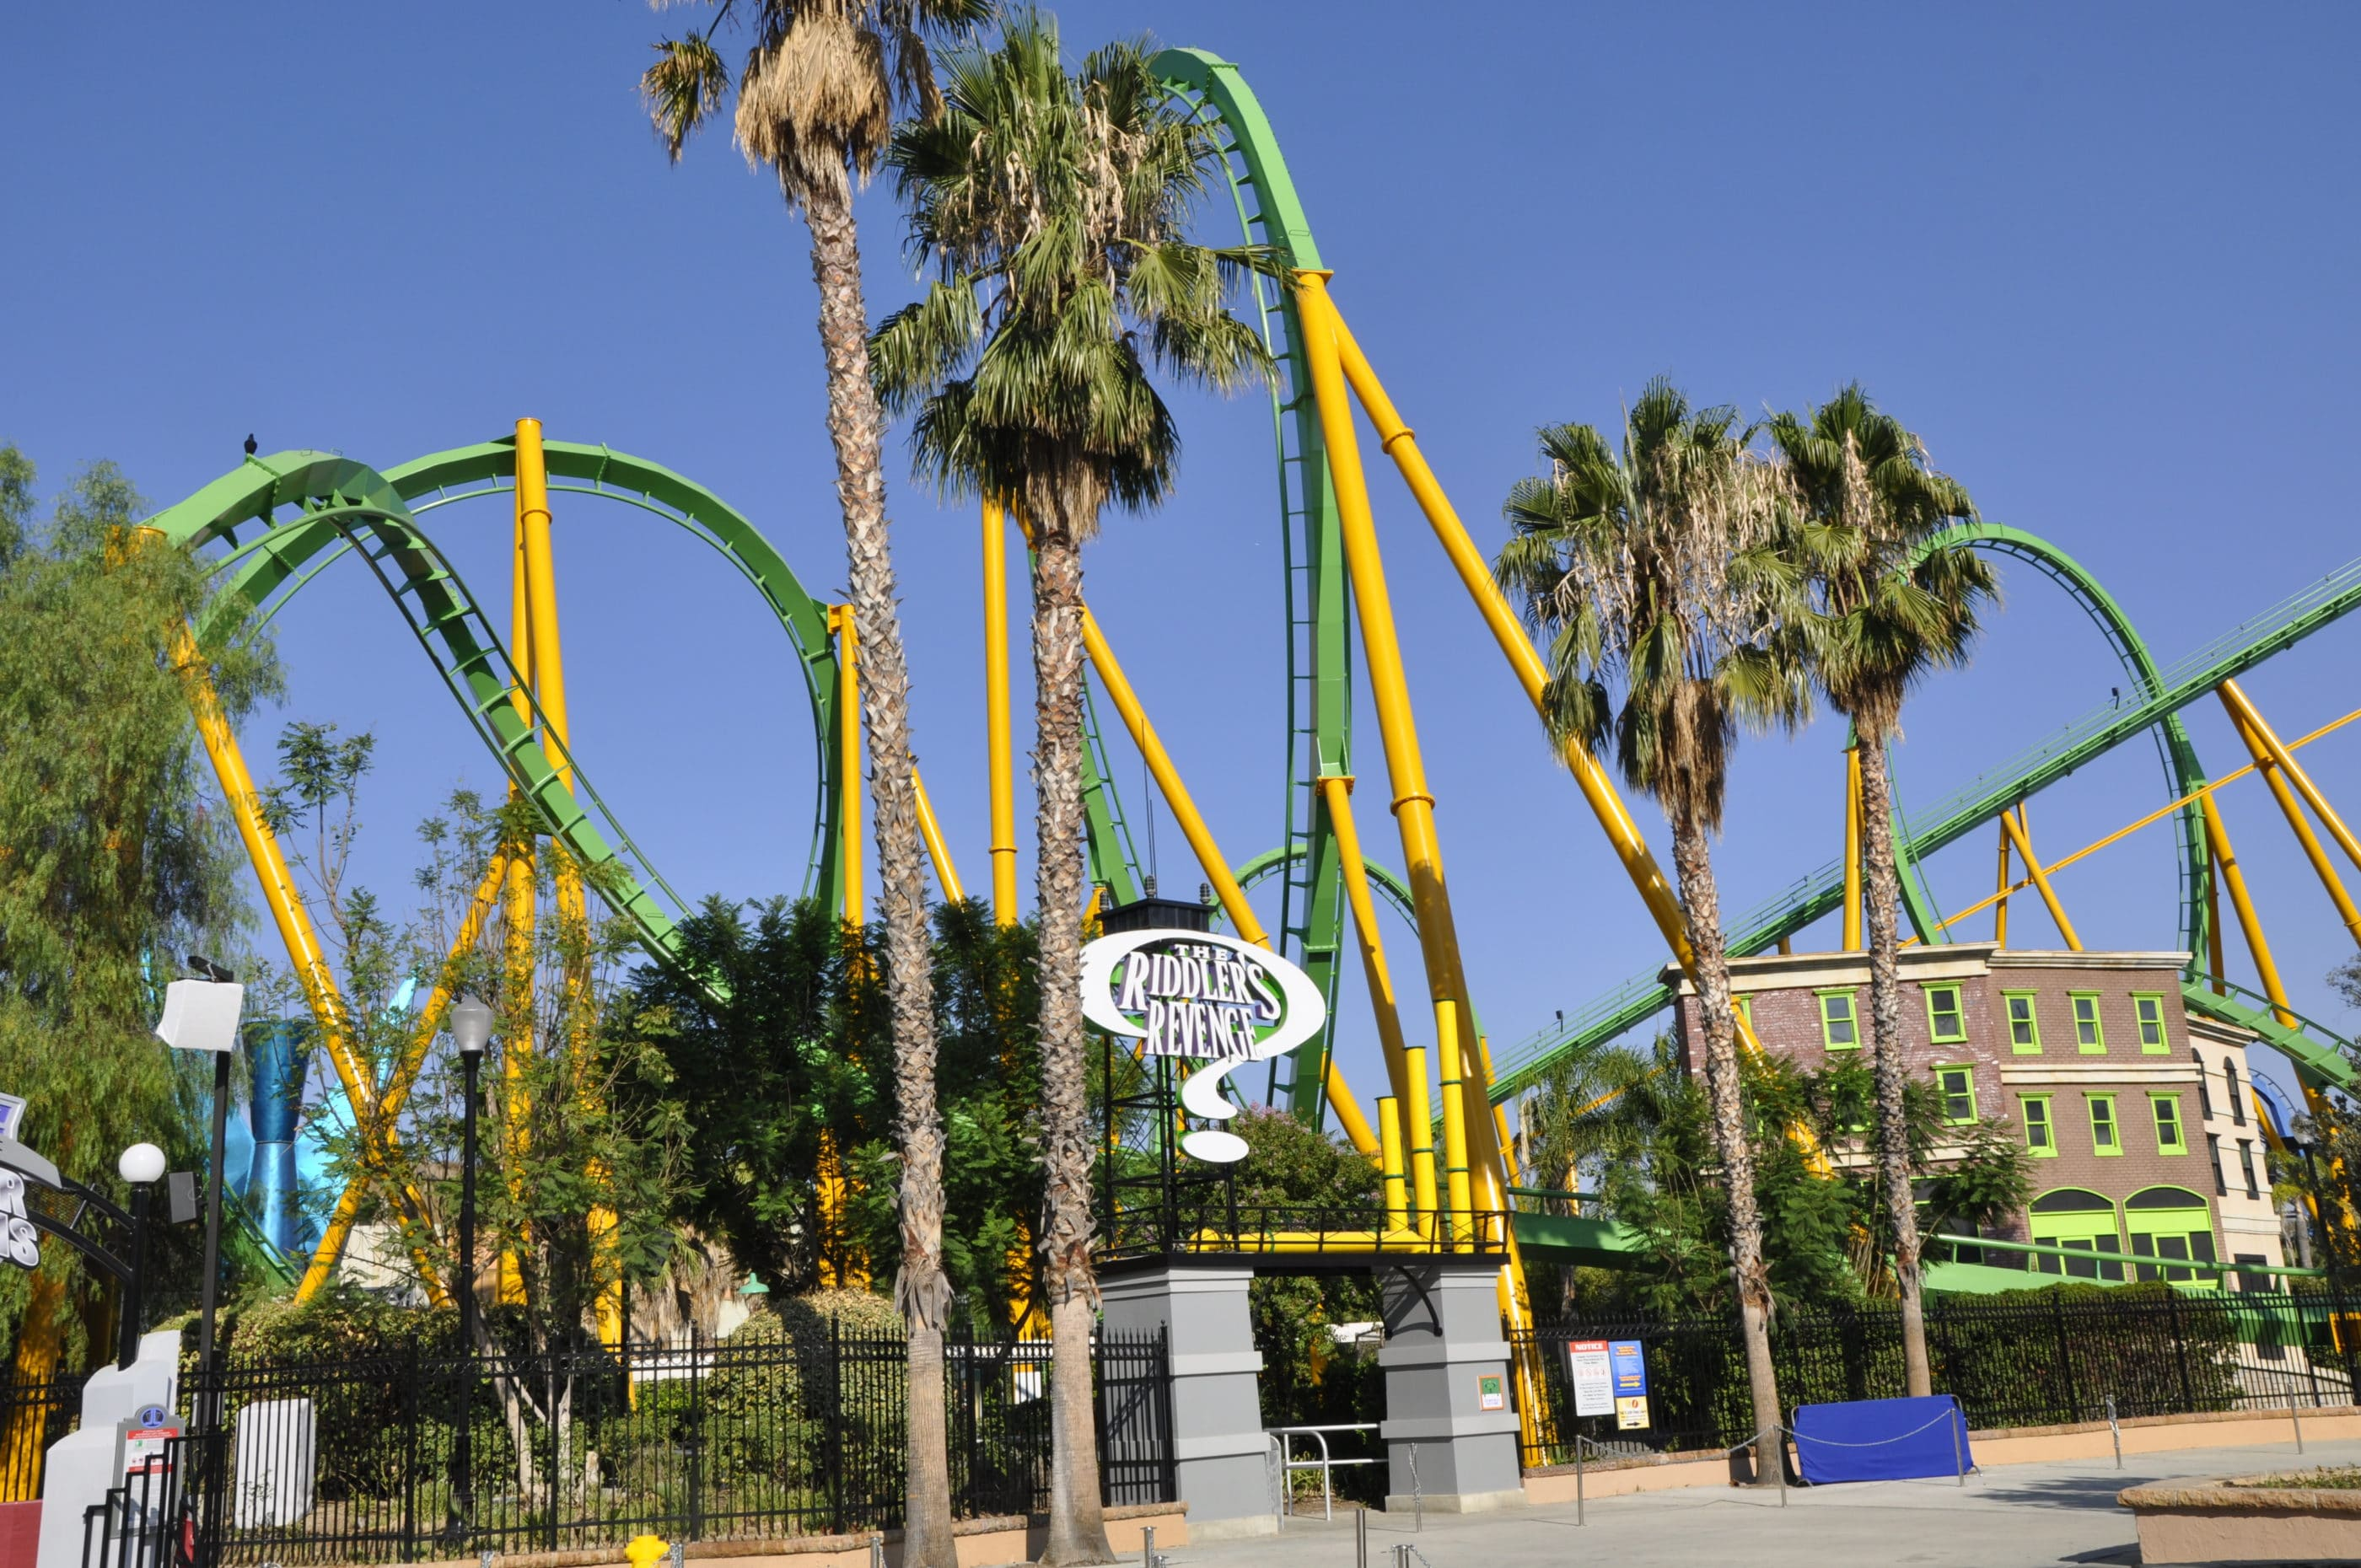 Six Flags Magic Mountain Rides: Riddlers Revenge